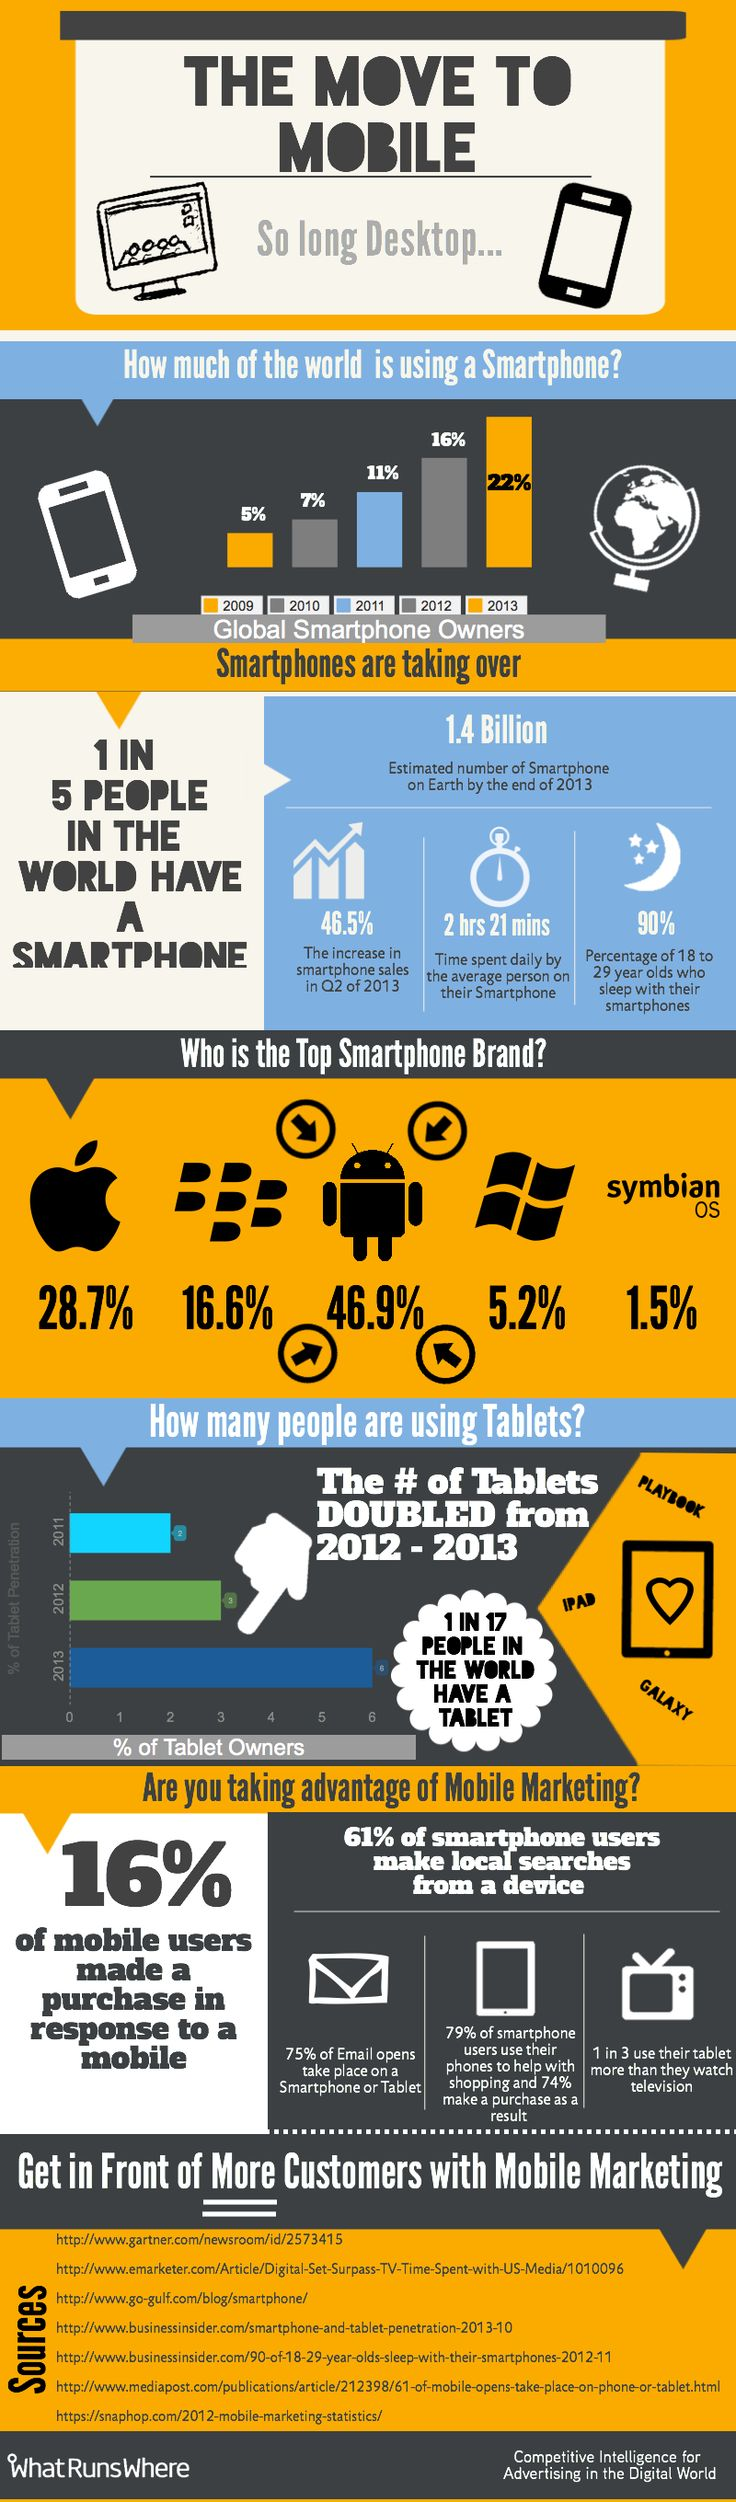 The Move to Mobile - Infographic showing the ever increasing switch from PC's to smartphones and tablets.